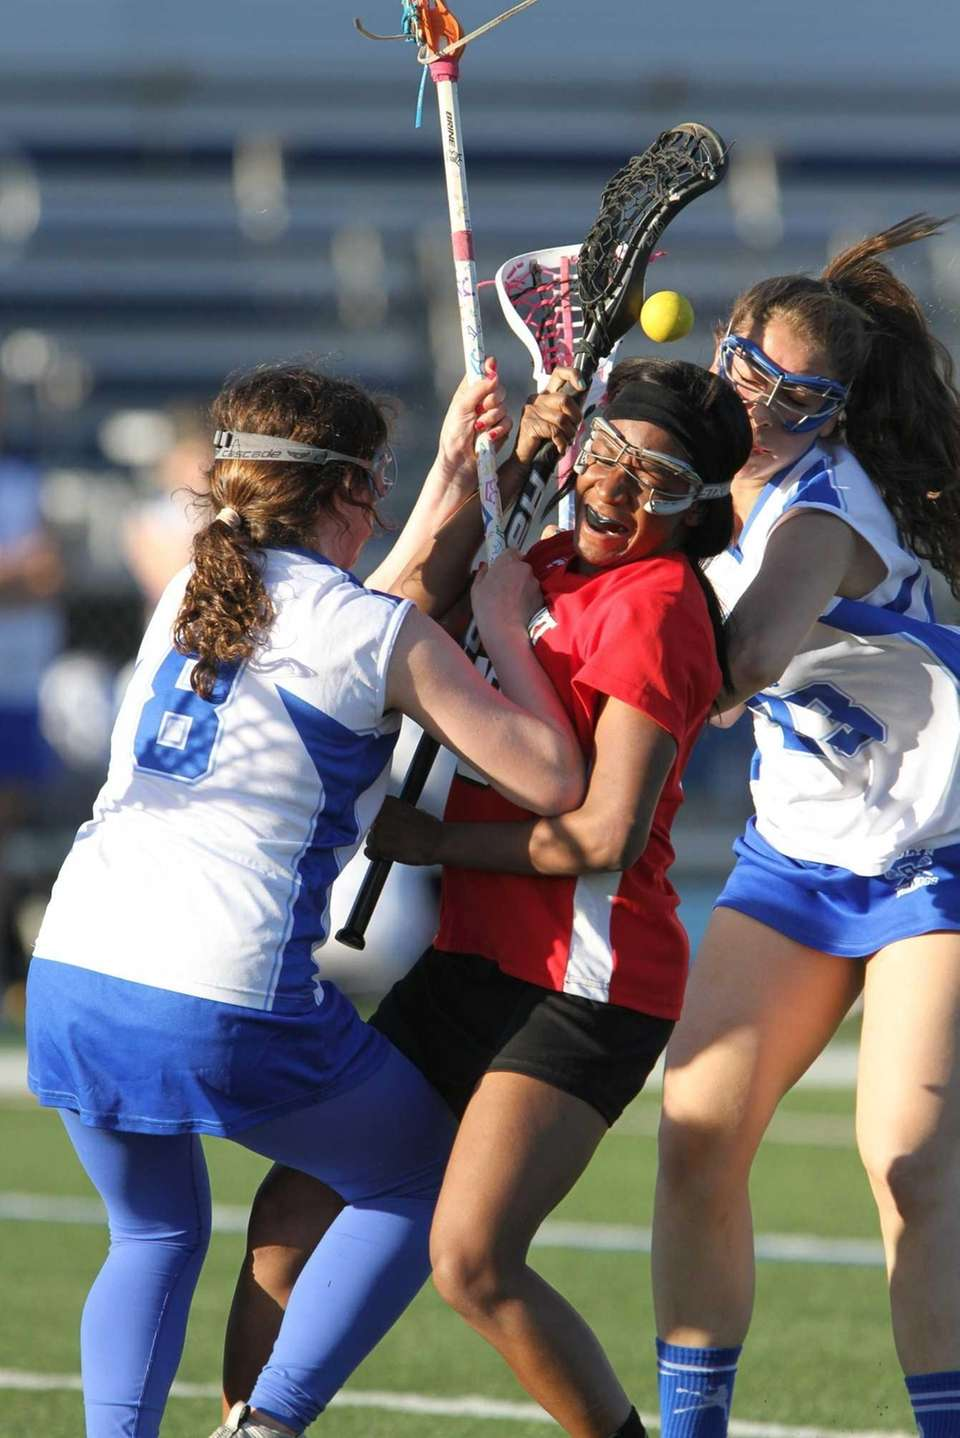 Roslyn's Reilly Liotta and Lidnesday Wolfe double-team Freeport's